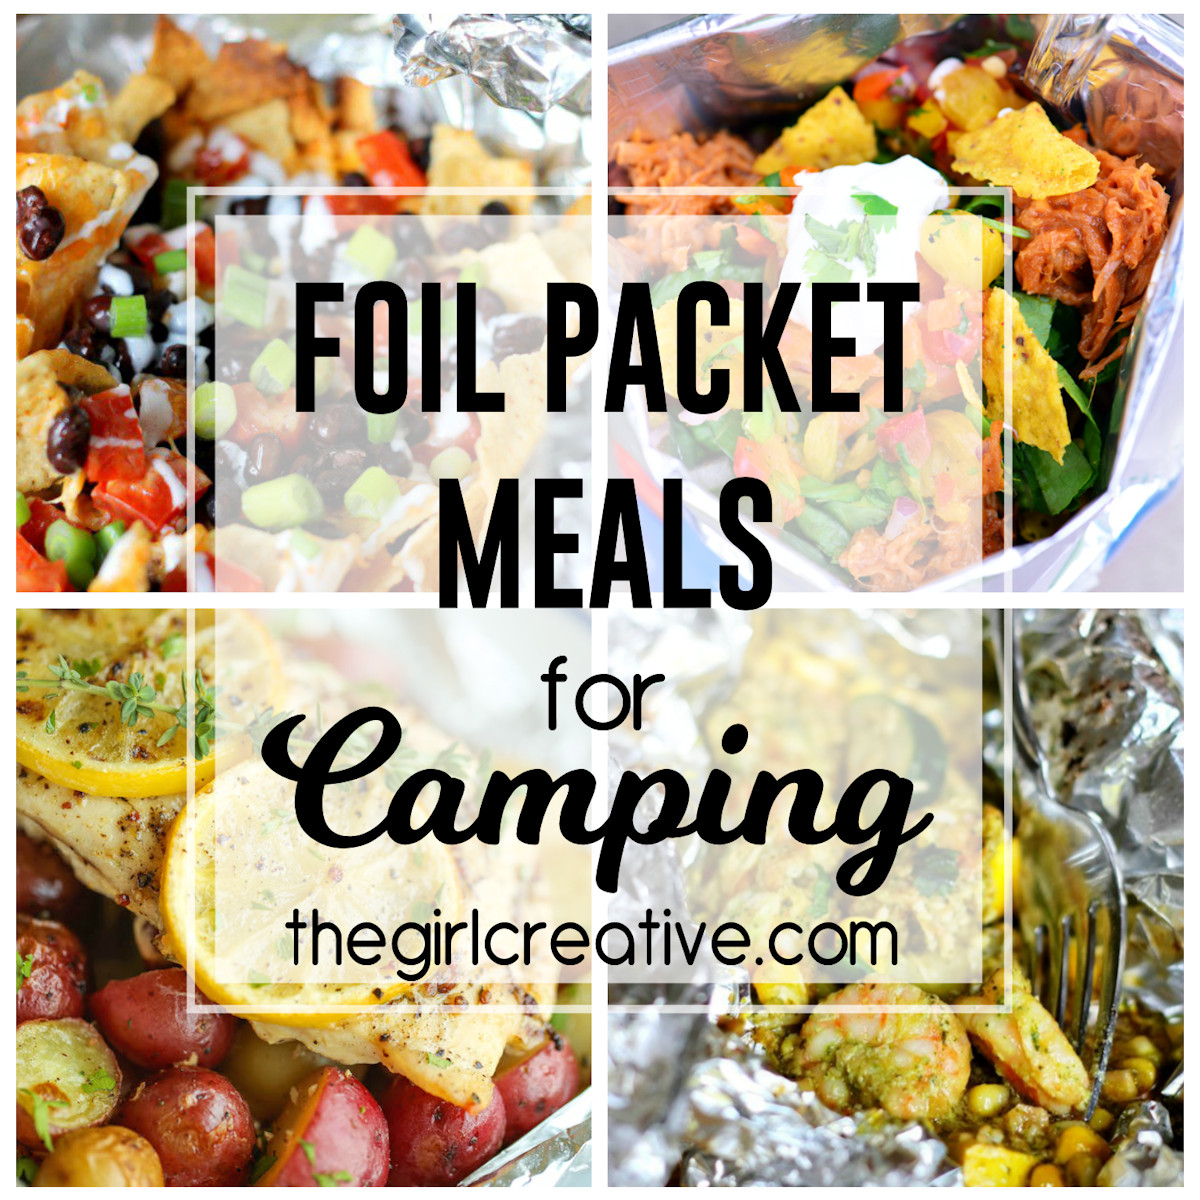 Foil Packet Dinners Camping  Delicious Foil Packet Meals for Camping The Girl Creative